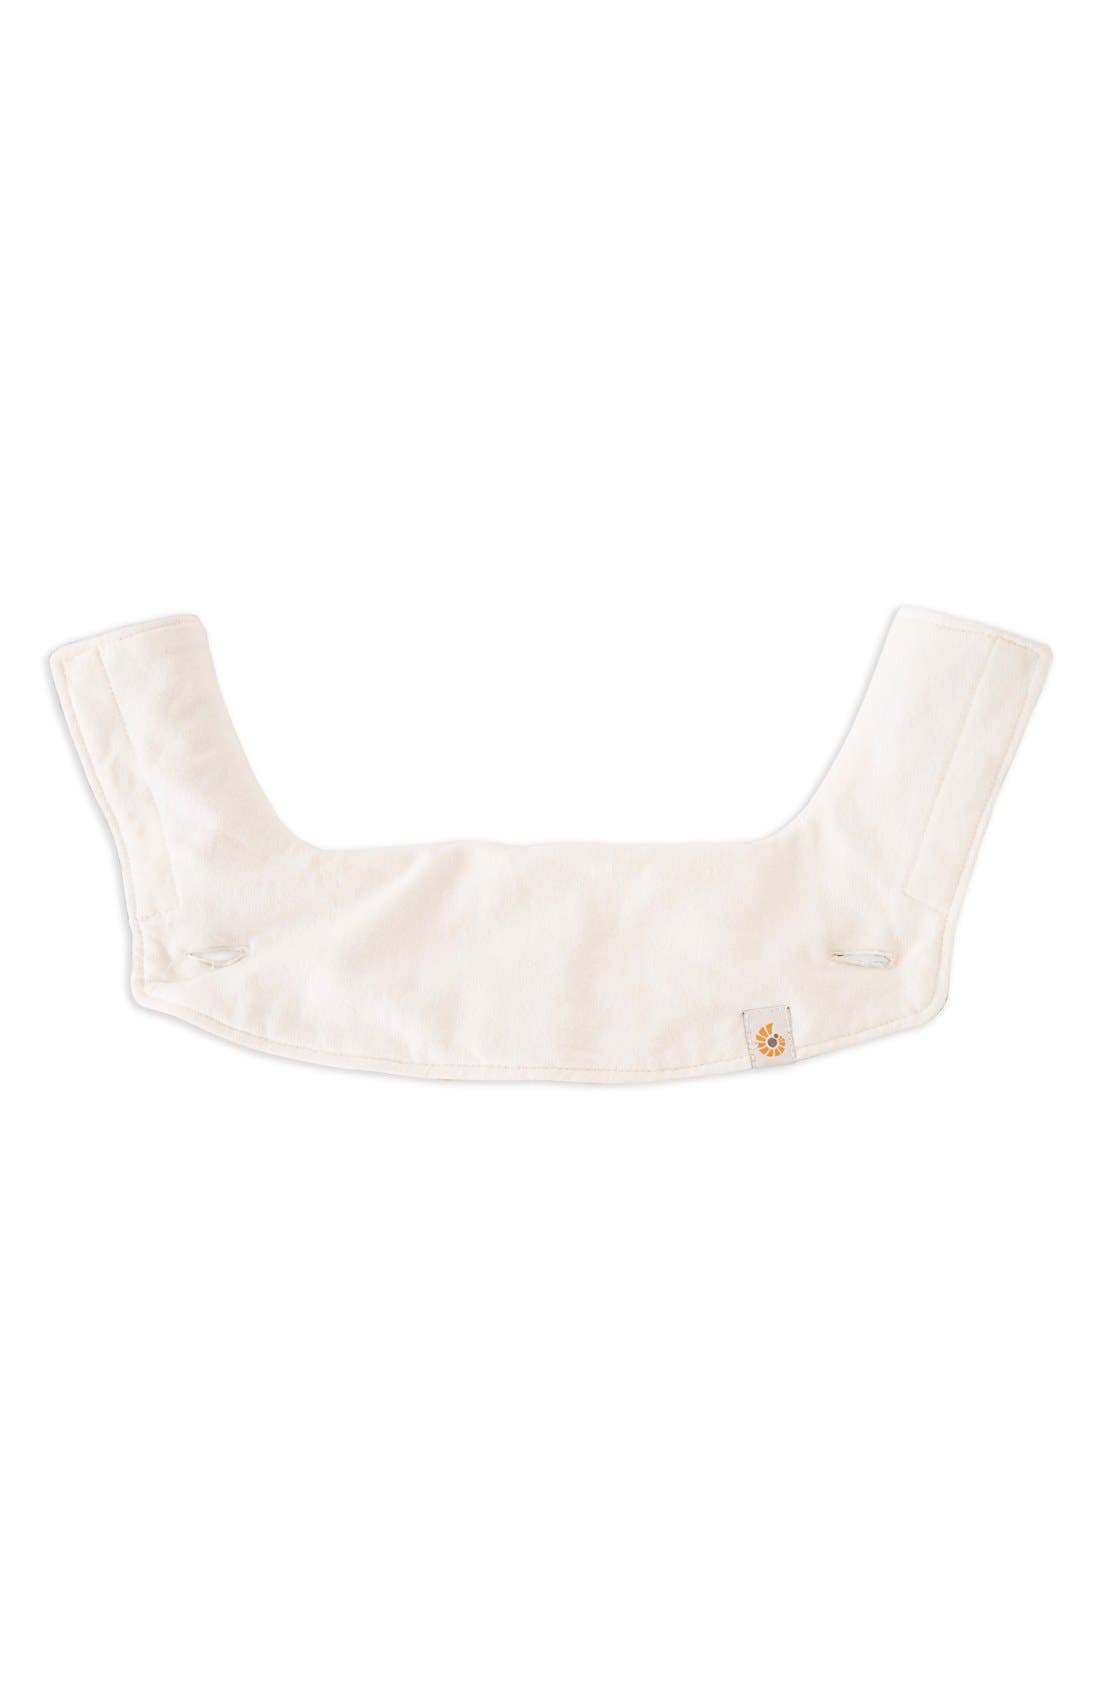 ERGOBABY 360 Carrier Teething Pad & Bib